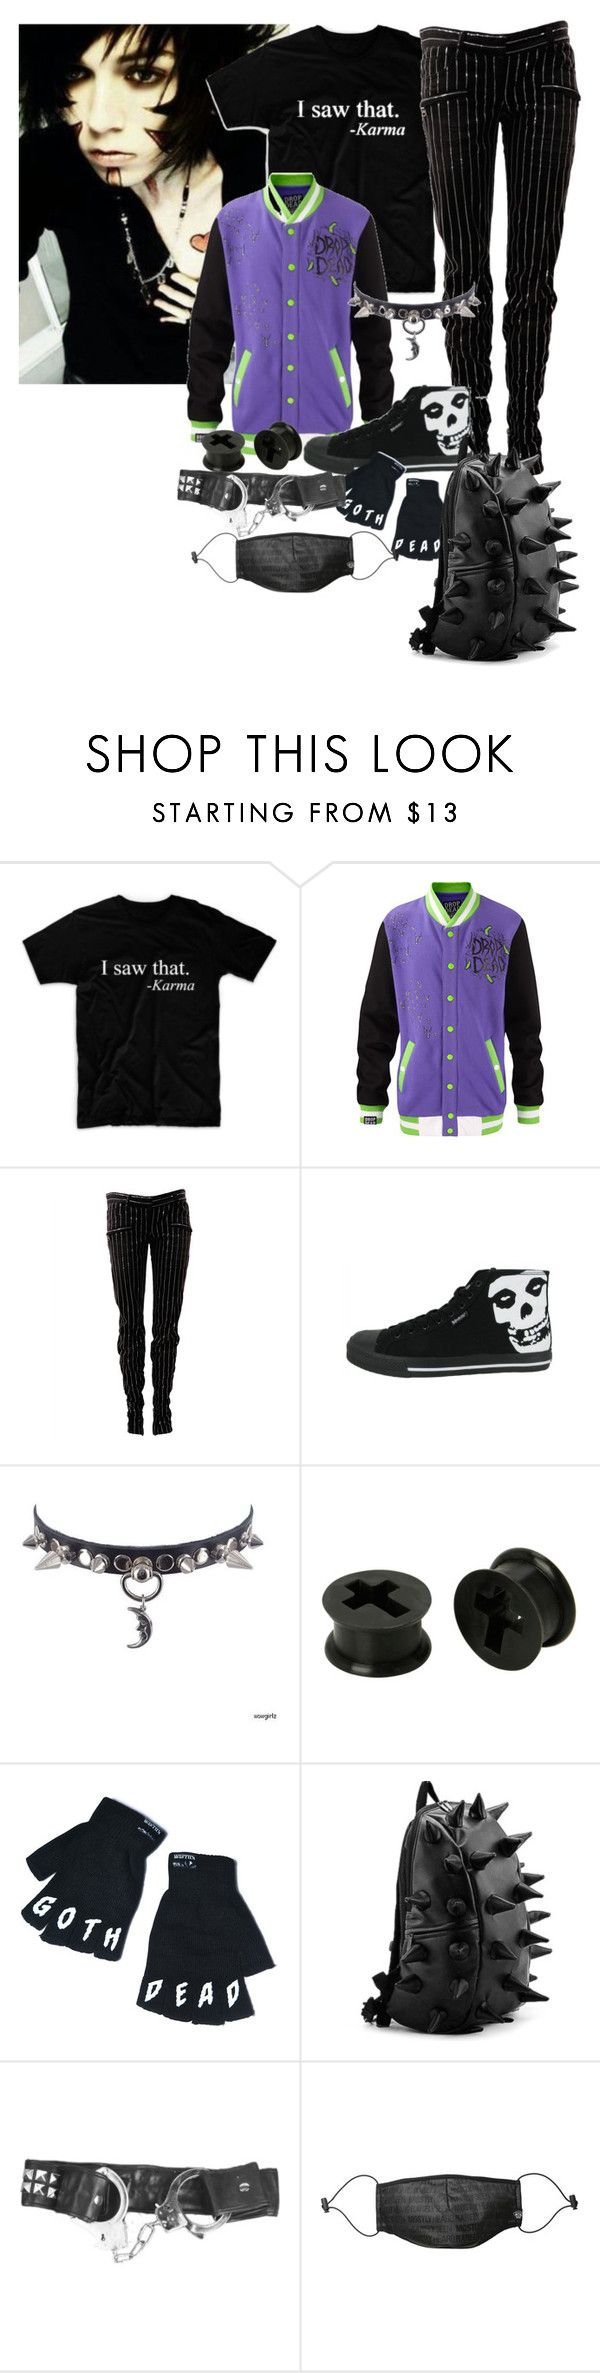 """""""Gothic or Emo...whatever..."""" by gothic-wolf ❤ liked on Polyvore featuring Balmain, Killstar, Mostly Heard Rarely Seen, men's fashion and menswear"""